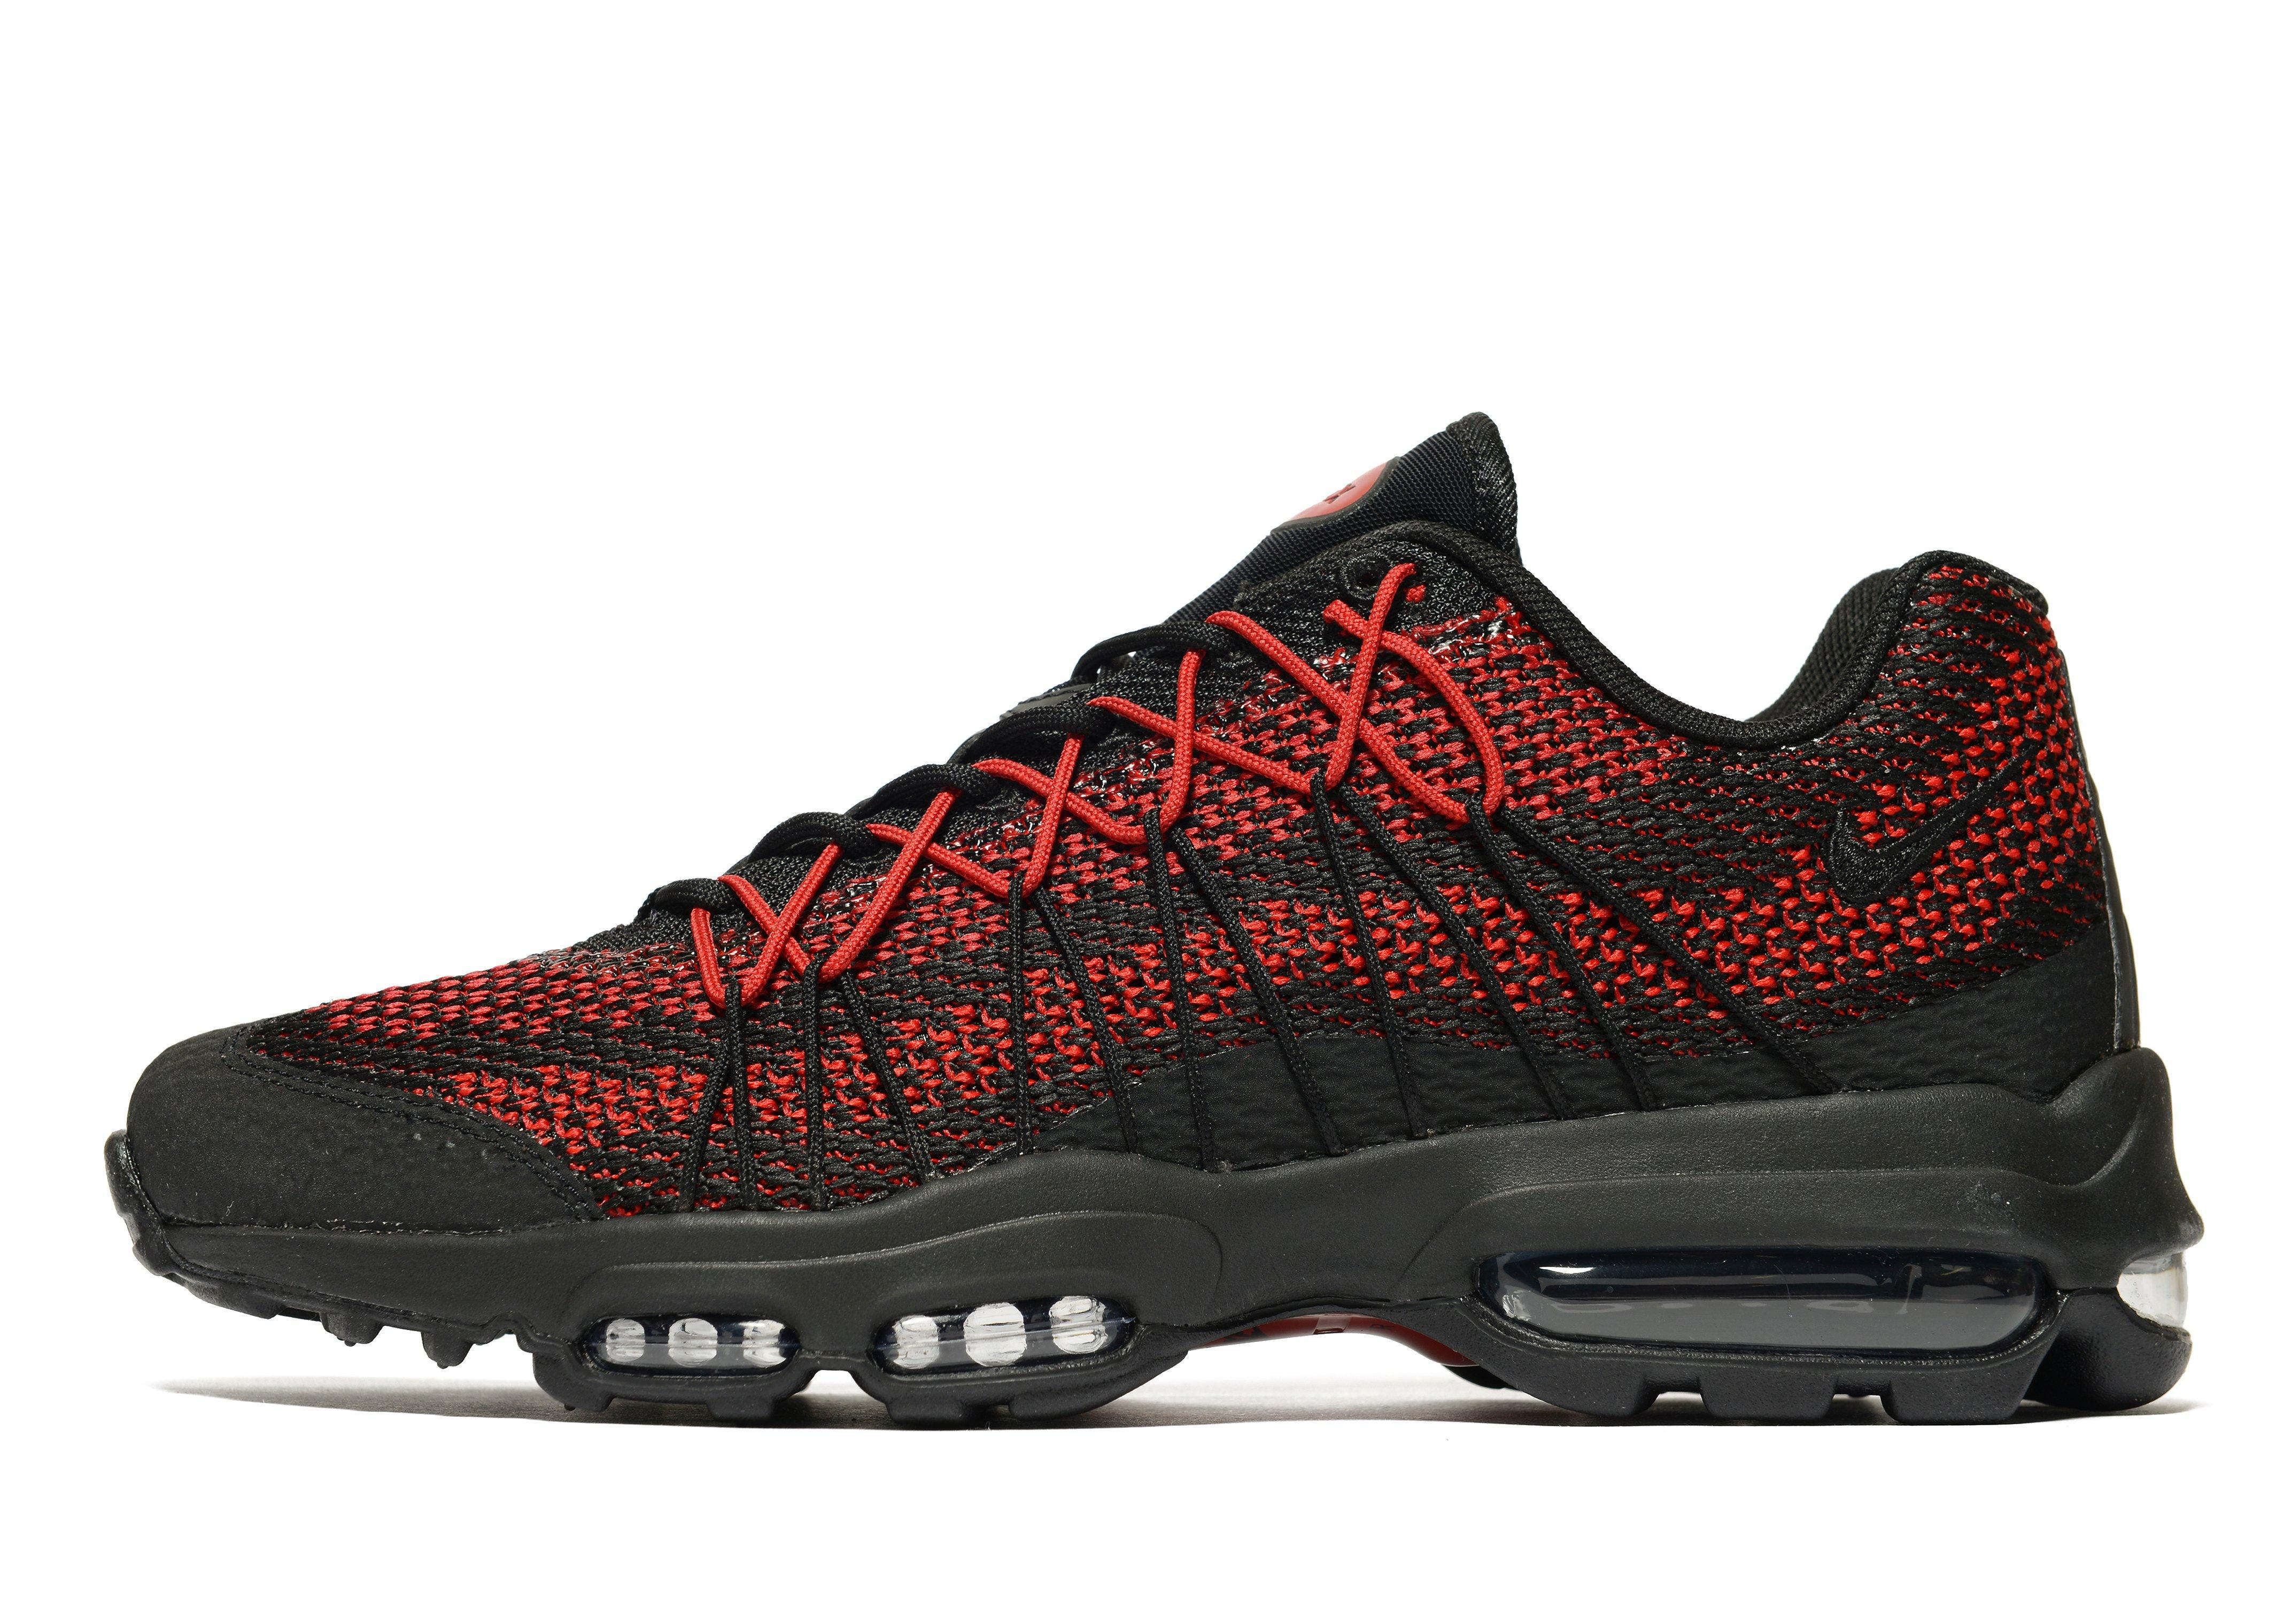 Nike Synthetic Air Max 95 Ultra Jacquard in BlackRed (Red